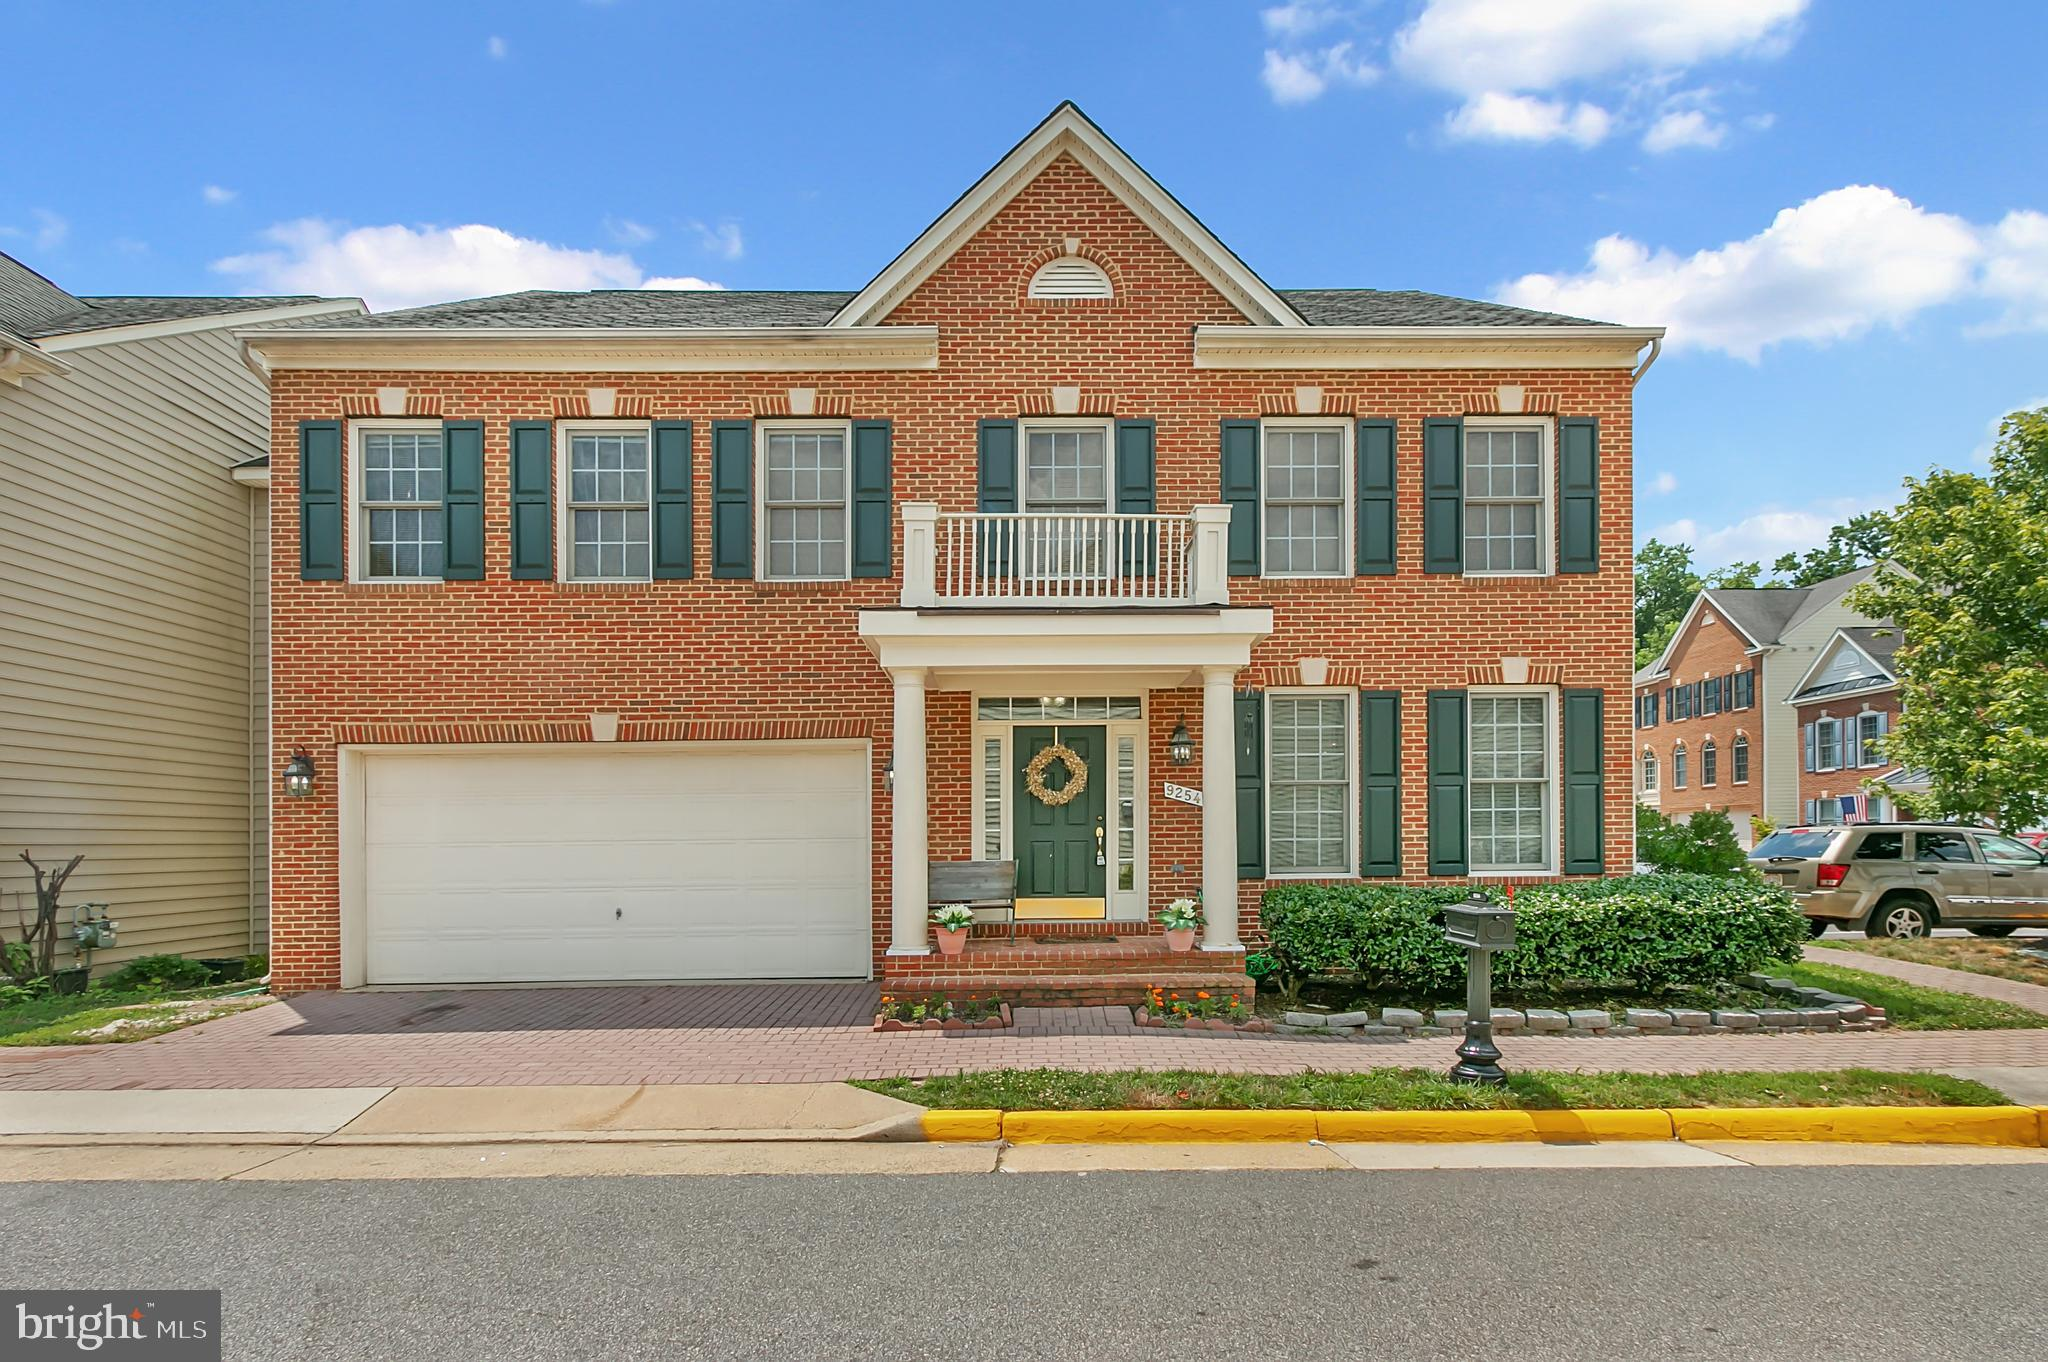 OPEN HOUSE 9/21/19 FROM 12-3 PM.  Just REDUCED and FRESHLY PAINTED.  ALL SYSTEM CHECKED AND READY TO GO.  CALL YOUR AGENTS NOW!!!!! This is an End of Summer Special! Submit your Highest and Best Offer today! This beautiful Lorton Station corner lot single-family home has just come back on the market. This home has enough space inside and outside for the busy metropolitan homeowner in the DMV. Your home comes complete with 4 bedrooms and 3.5 bathrooms. There are 4 bedrooms, 2 full baths on the upper level; on the main level there's a family room with a gas burning fireplace, kitchen with hardwood floors, butler~s pantry, dining room, and a powder room. The lower level has a recreation room, an office, and a full bathroom. There are so many options on this level, whether it be a telecommuting office, In-law suite, children~s playroom, etc.; the choice is yours. This is a home to make your own. Call your agent and book a showing ASAP! Thanks for showing and good luck!